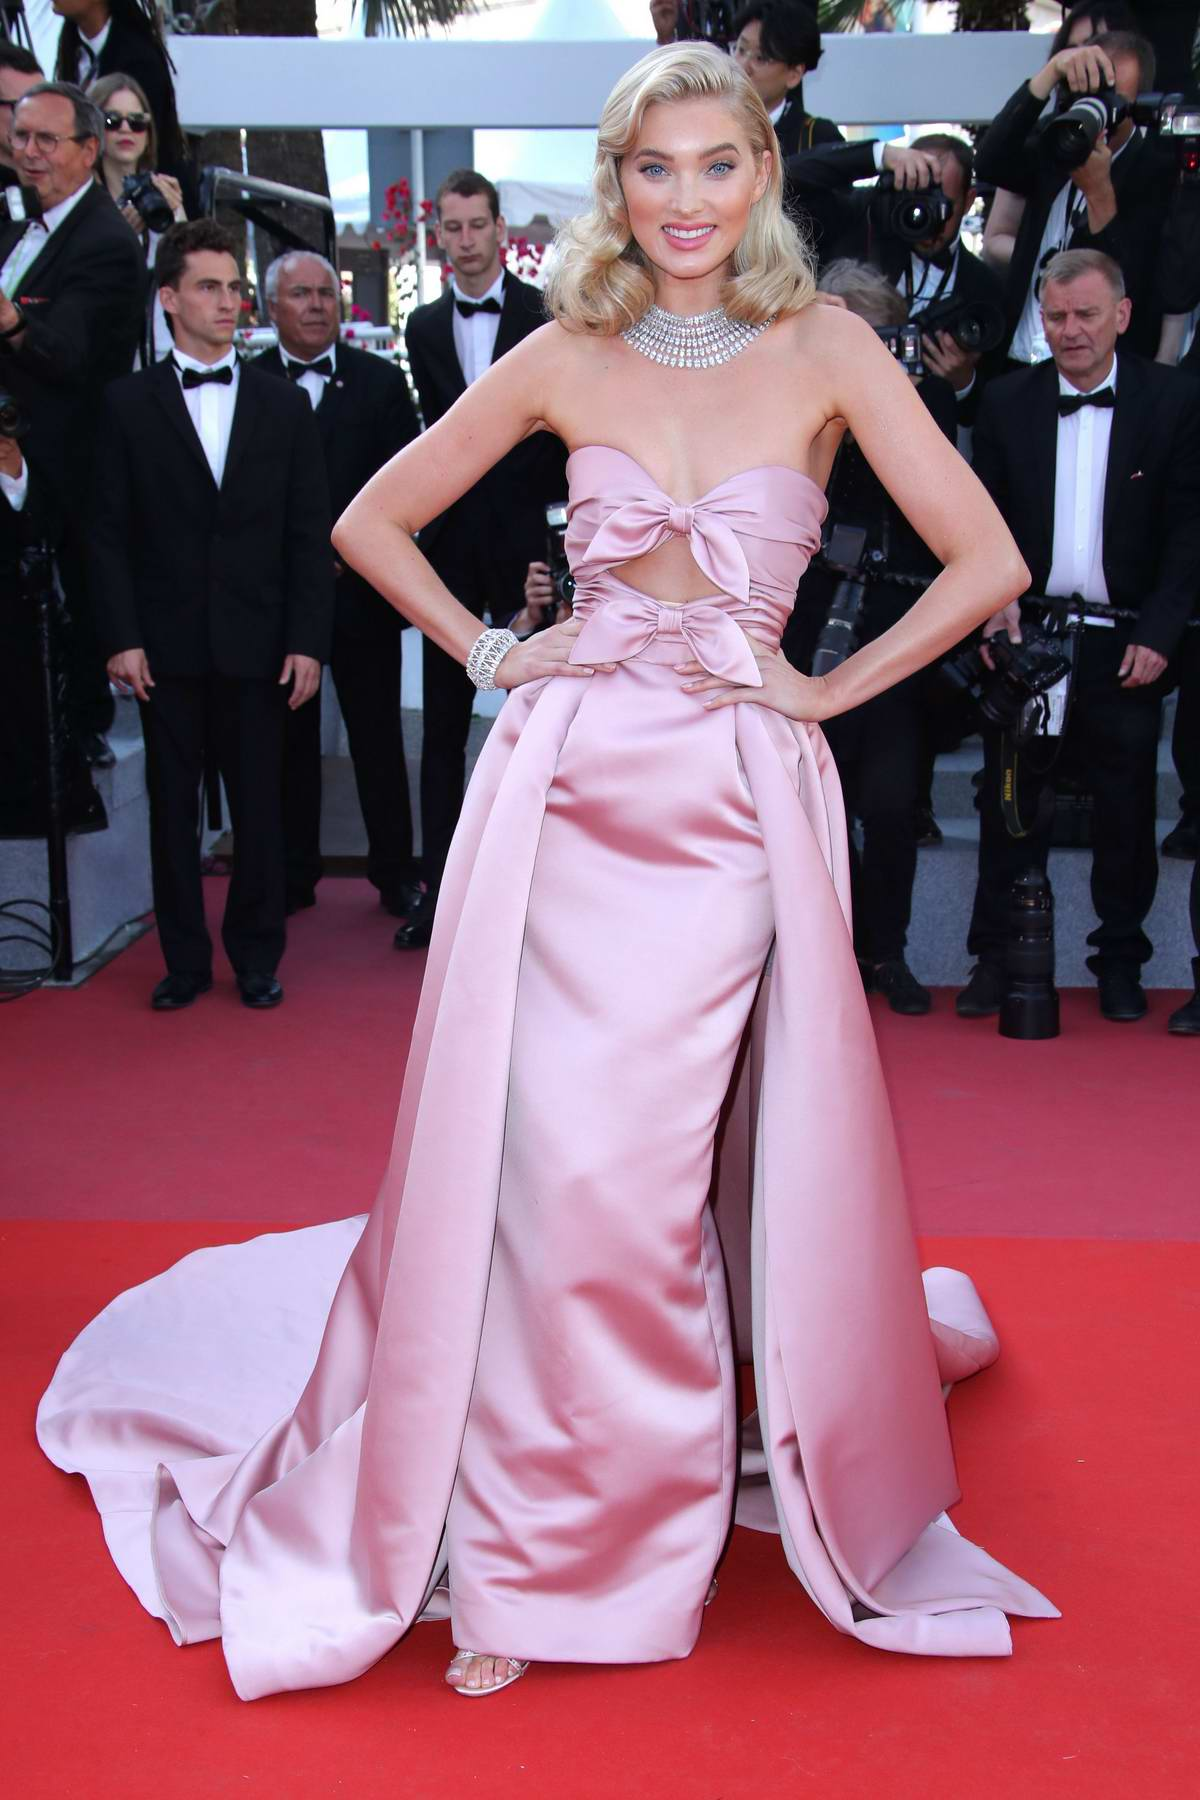 Elsa Hosk attends 'Girls Of The Sun' premiere during 71st Annual Cannes Film Festival in Cannes, France